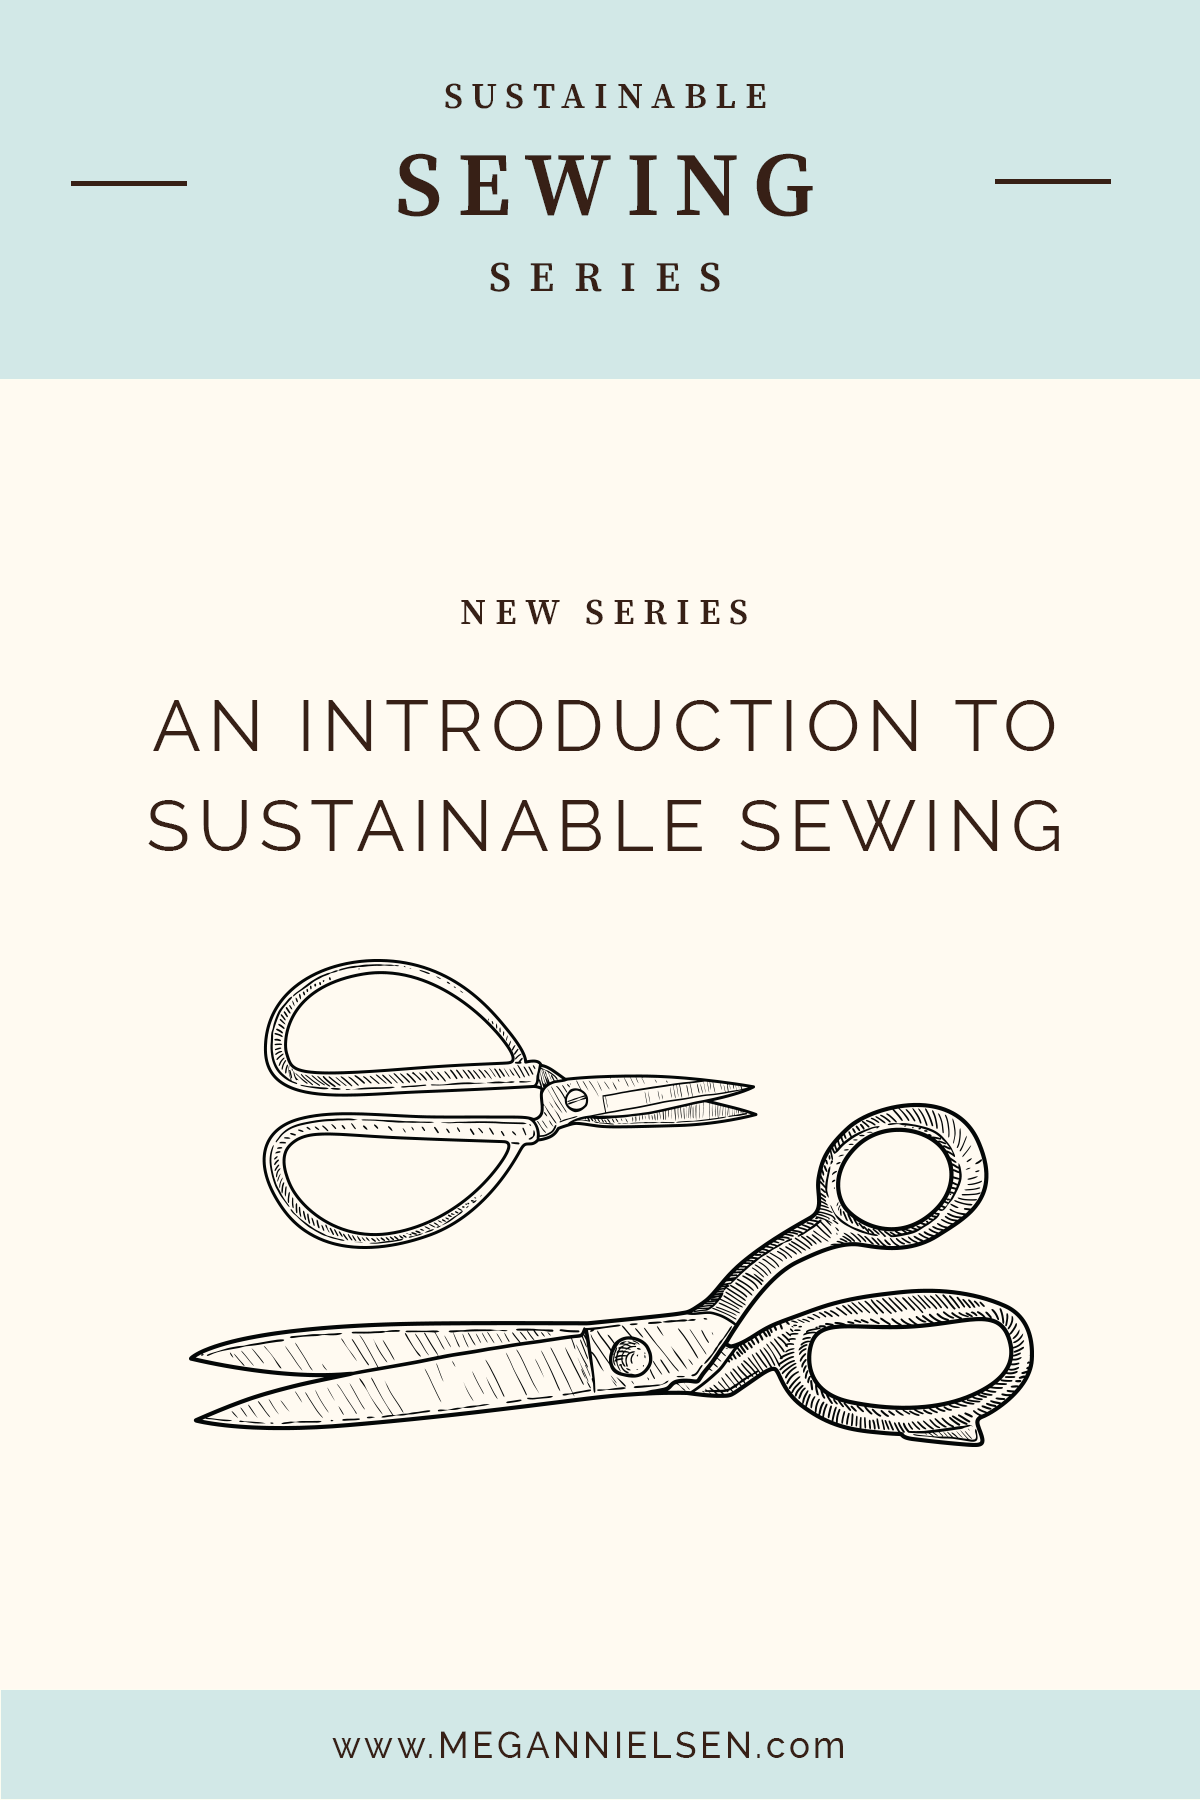 Sustainable sewing series on Megan Nielsen Design Diary